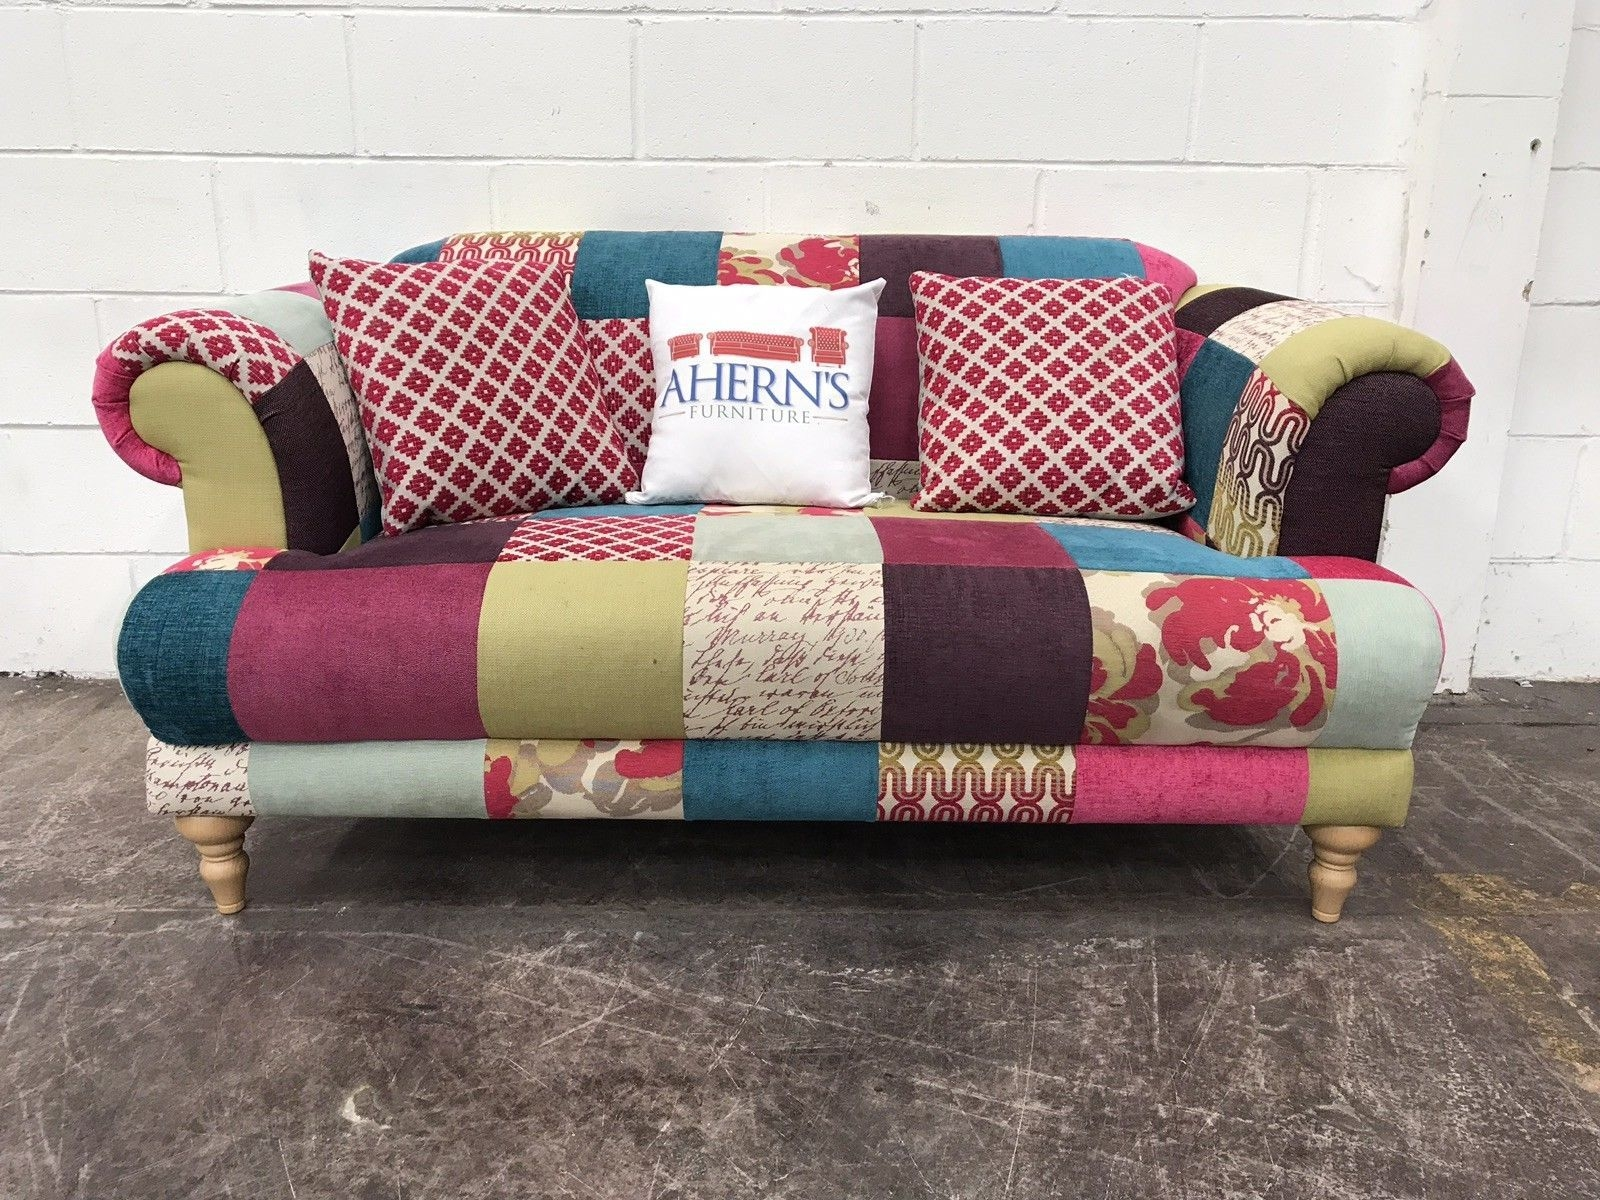 Beautiful Dfs Kitty Sofa From The Capsule Range  Aherns Furniture